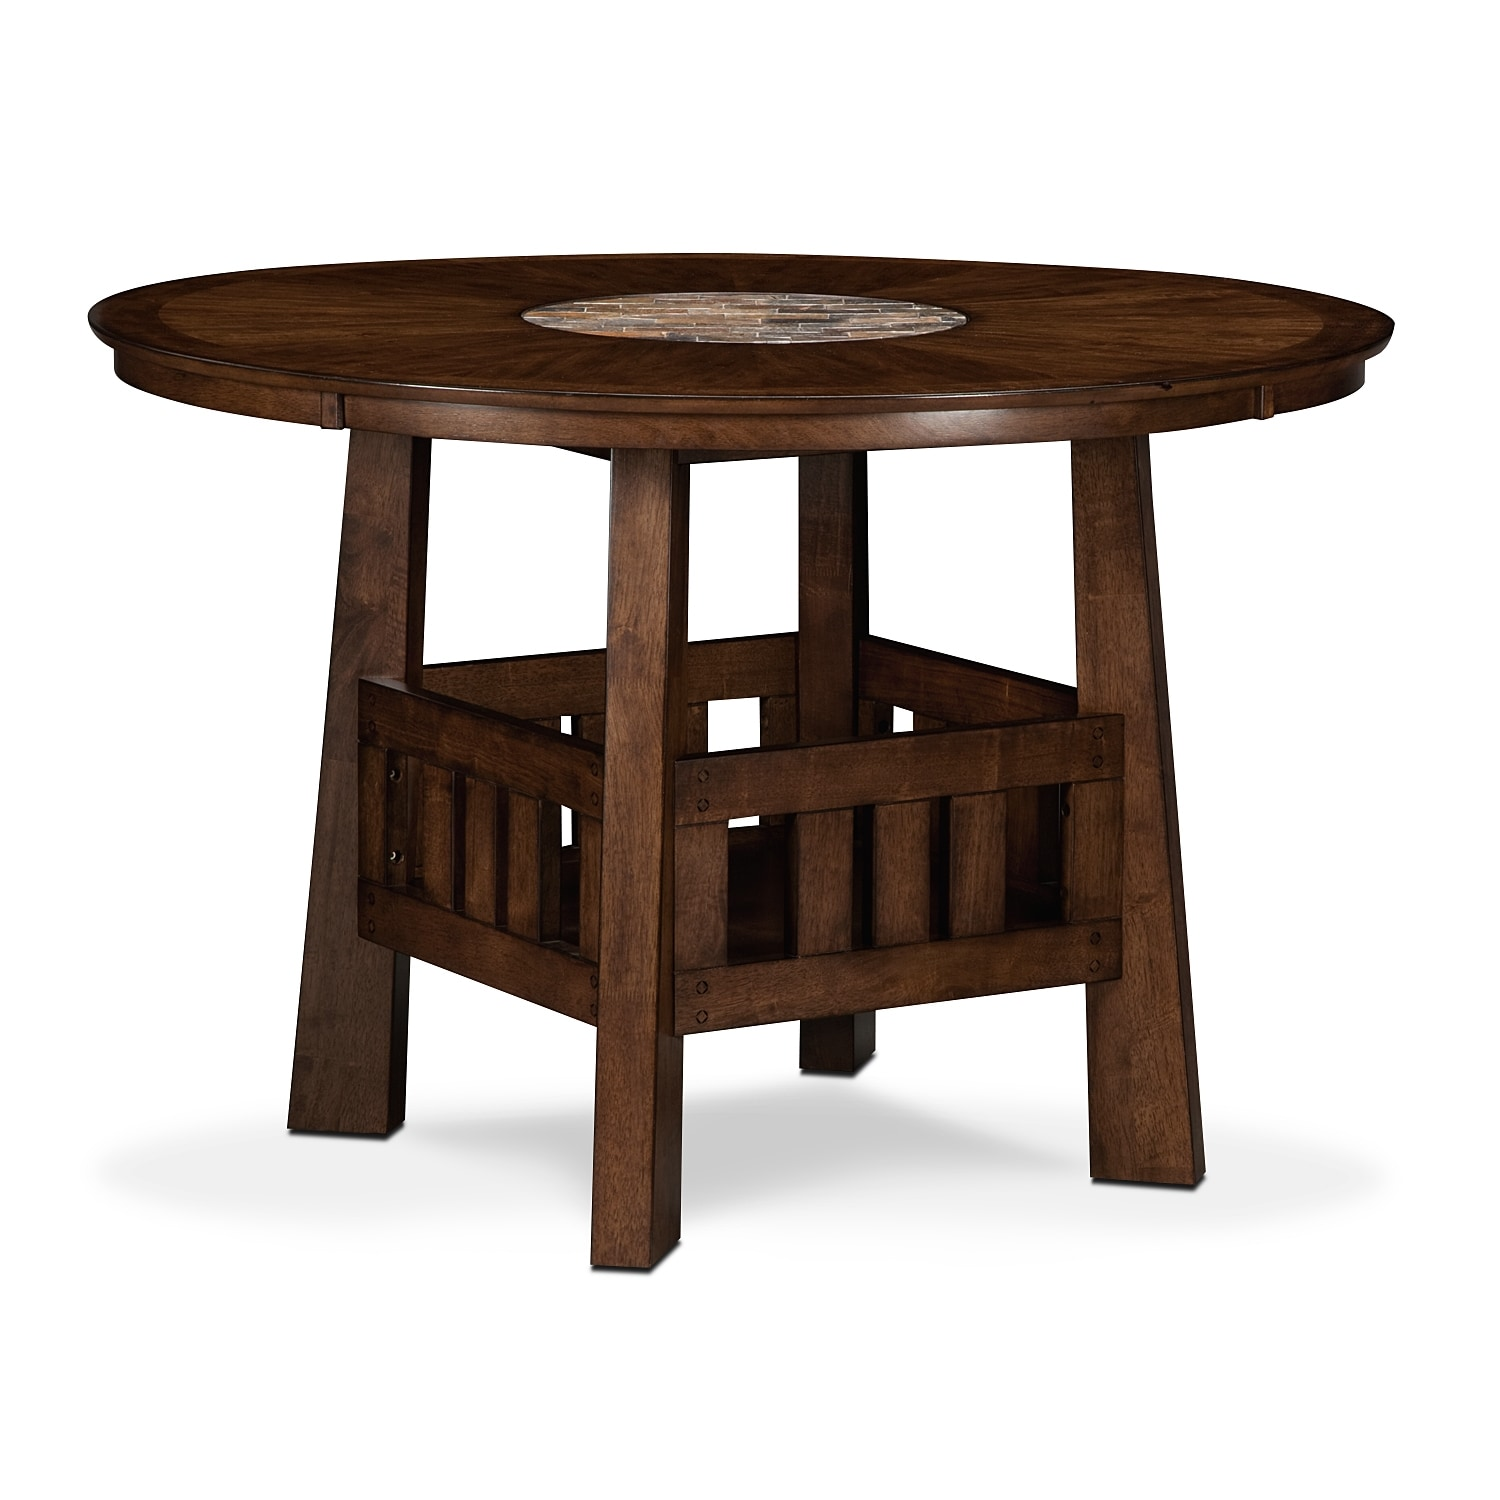 Average Dining Room Table Height: Harbor Pointe 5 Pc. Counter-Height Dinette